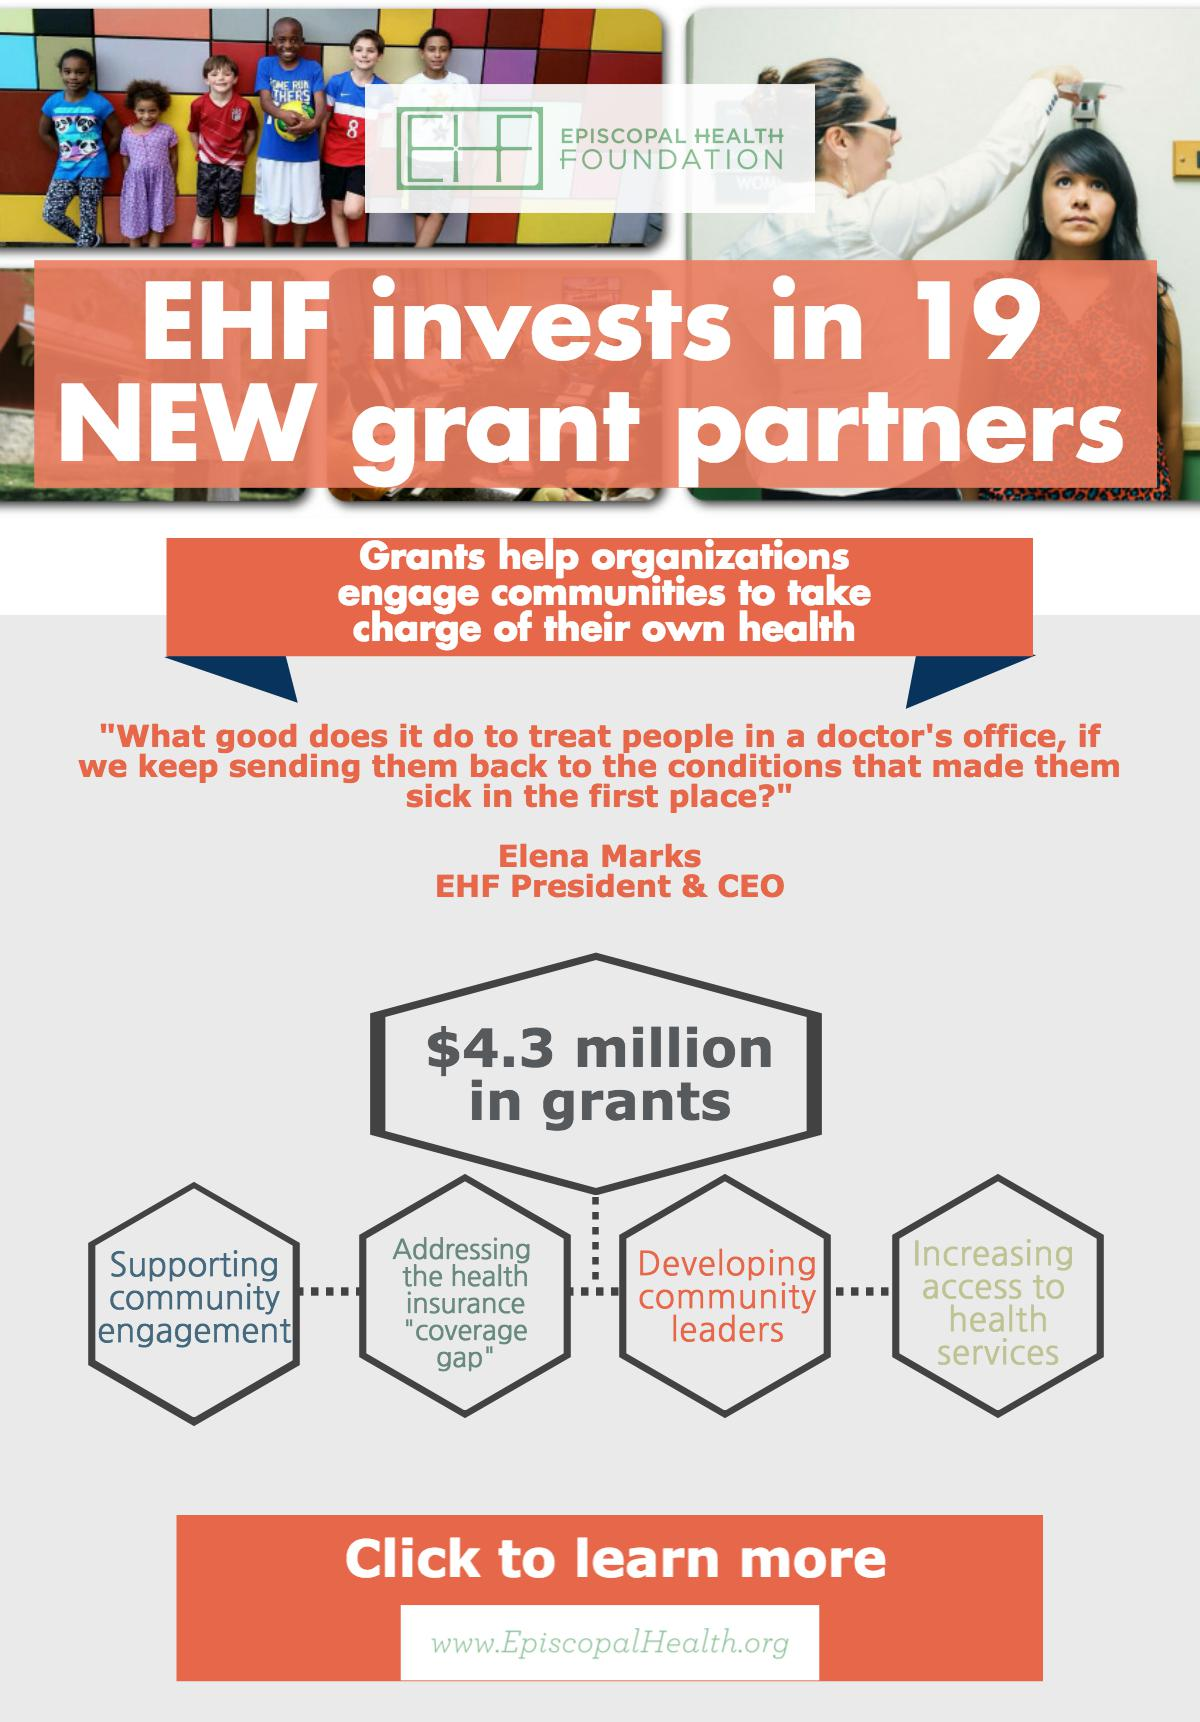 ehf-grants-2-announcement-6-16.jpeg